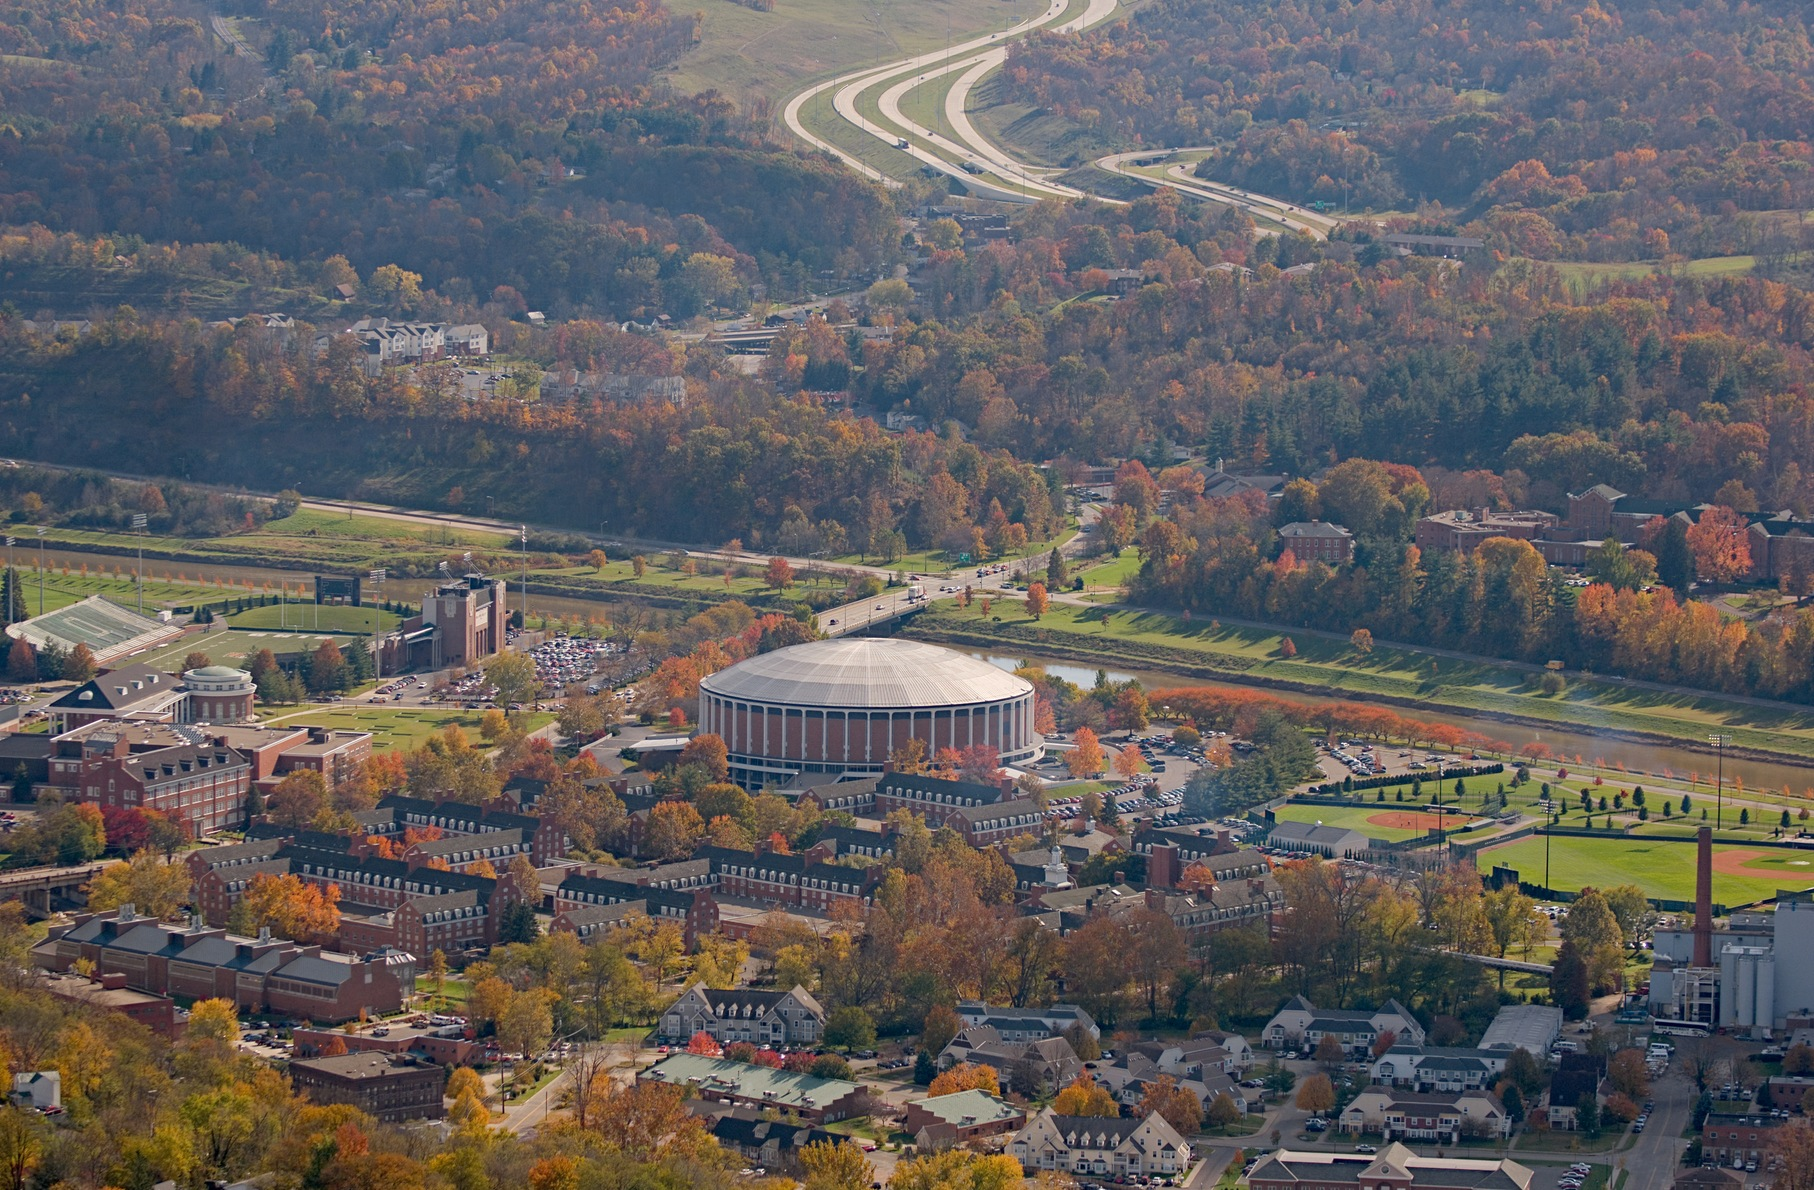 Aerial view of campus during fall